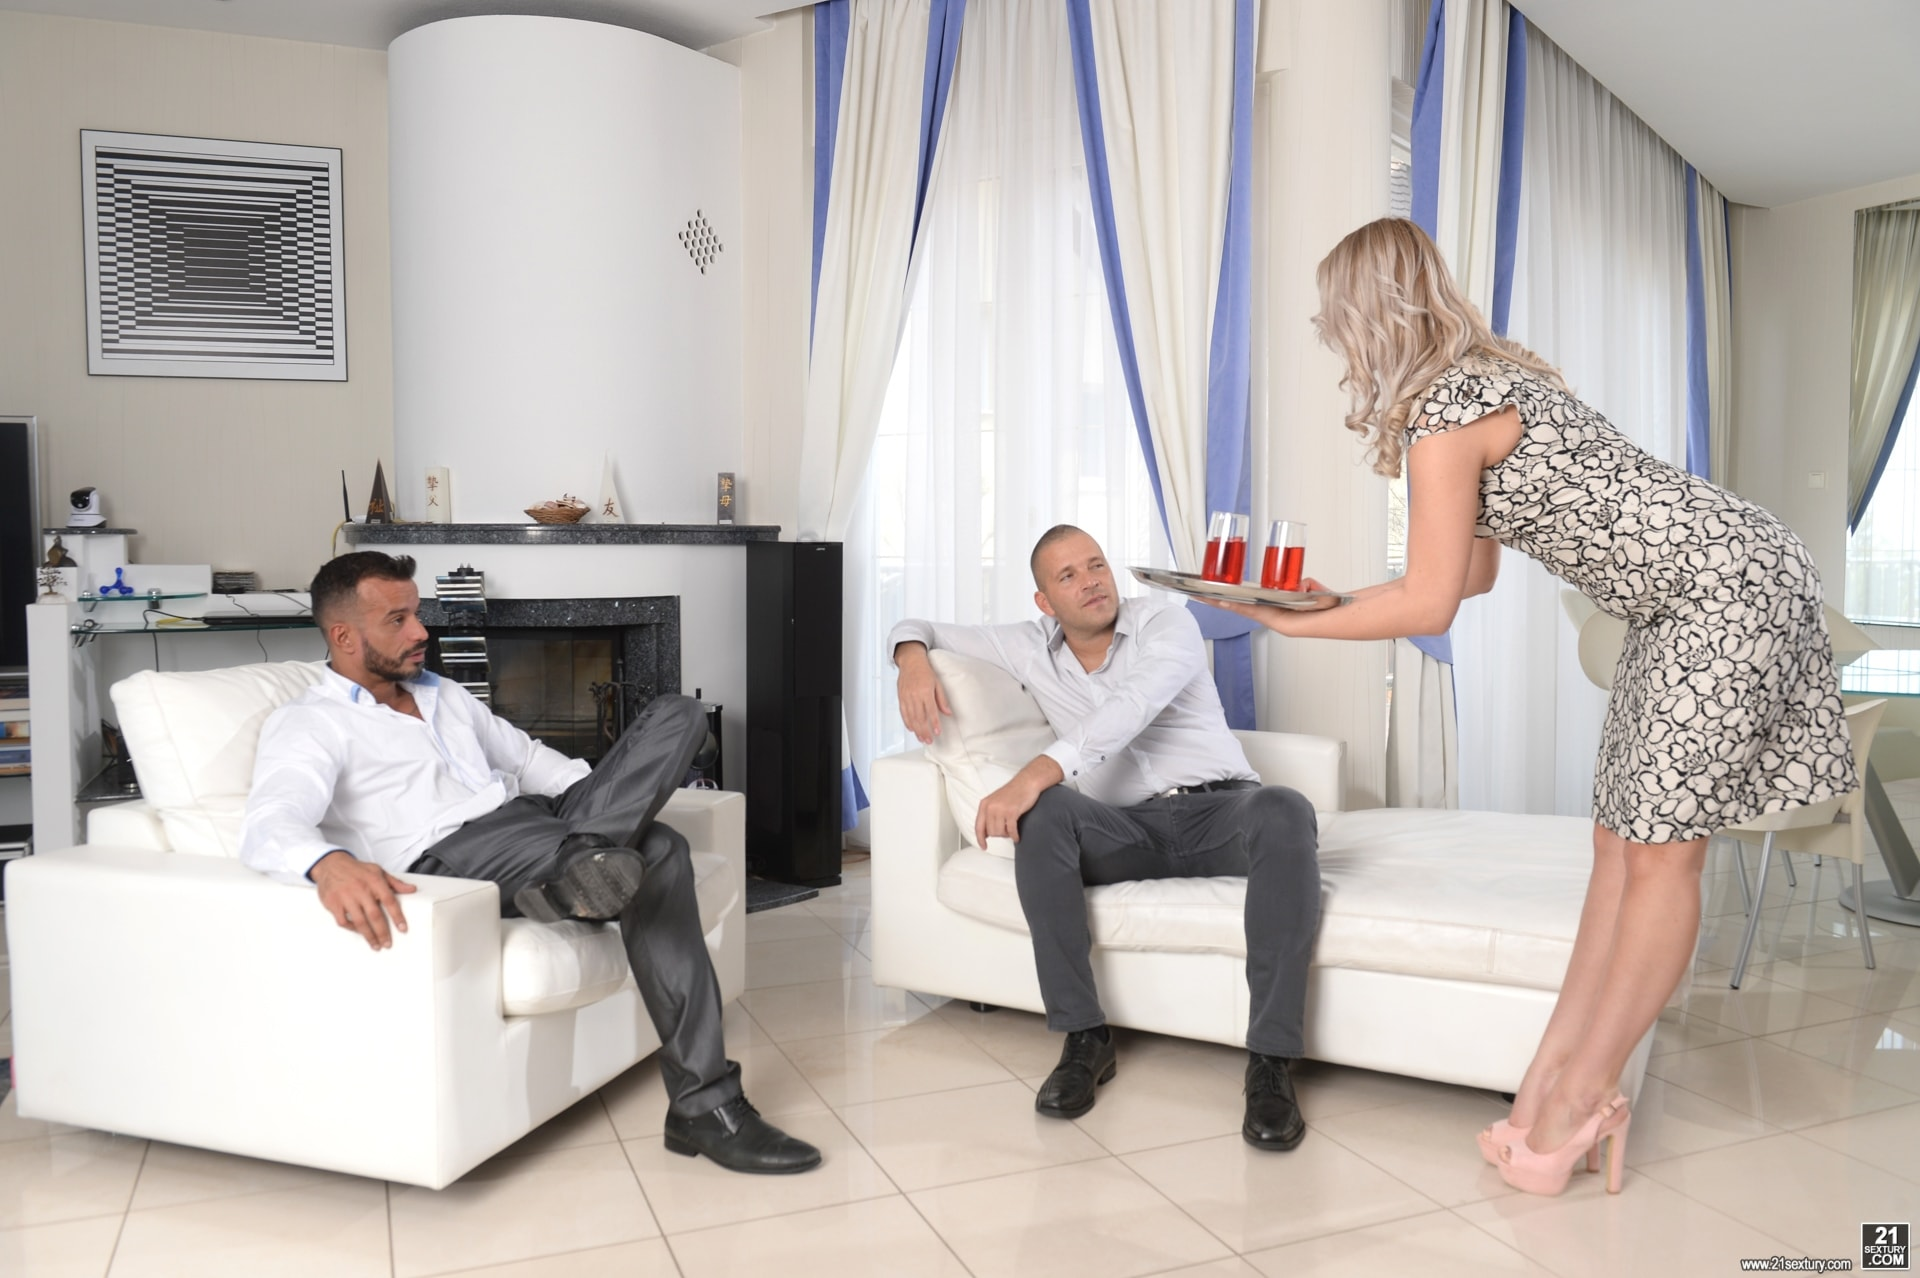 21Sextury 'Taking My Husband and Partner At Once' starring Nikki Dream (Photo 56)